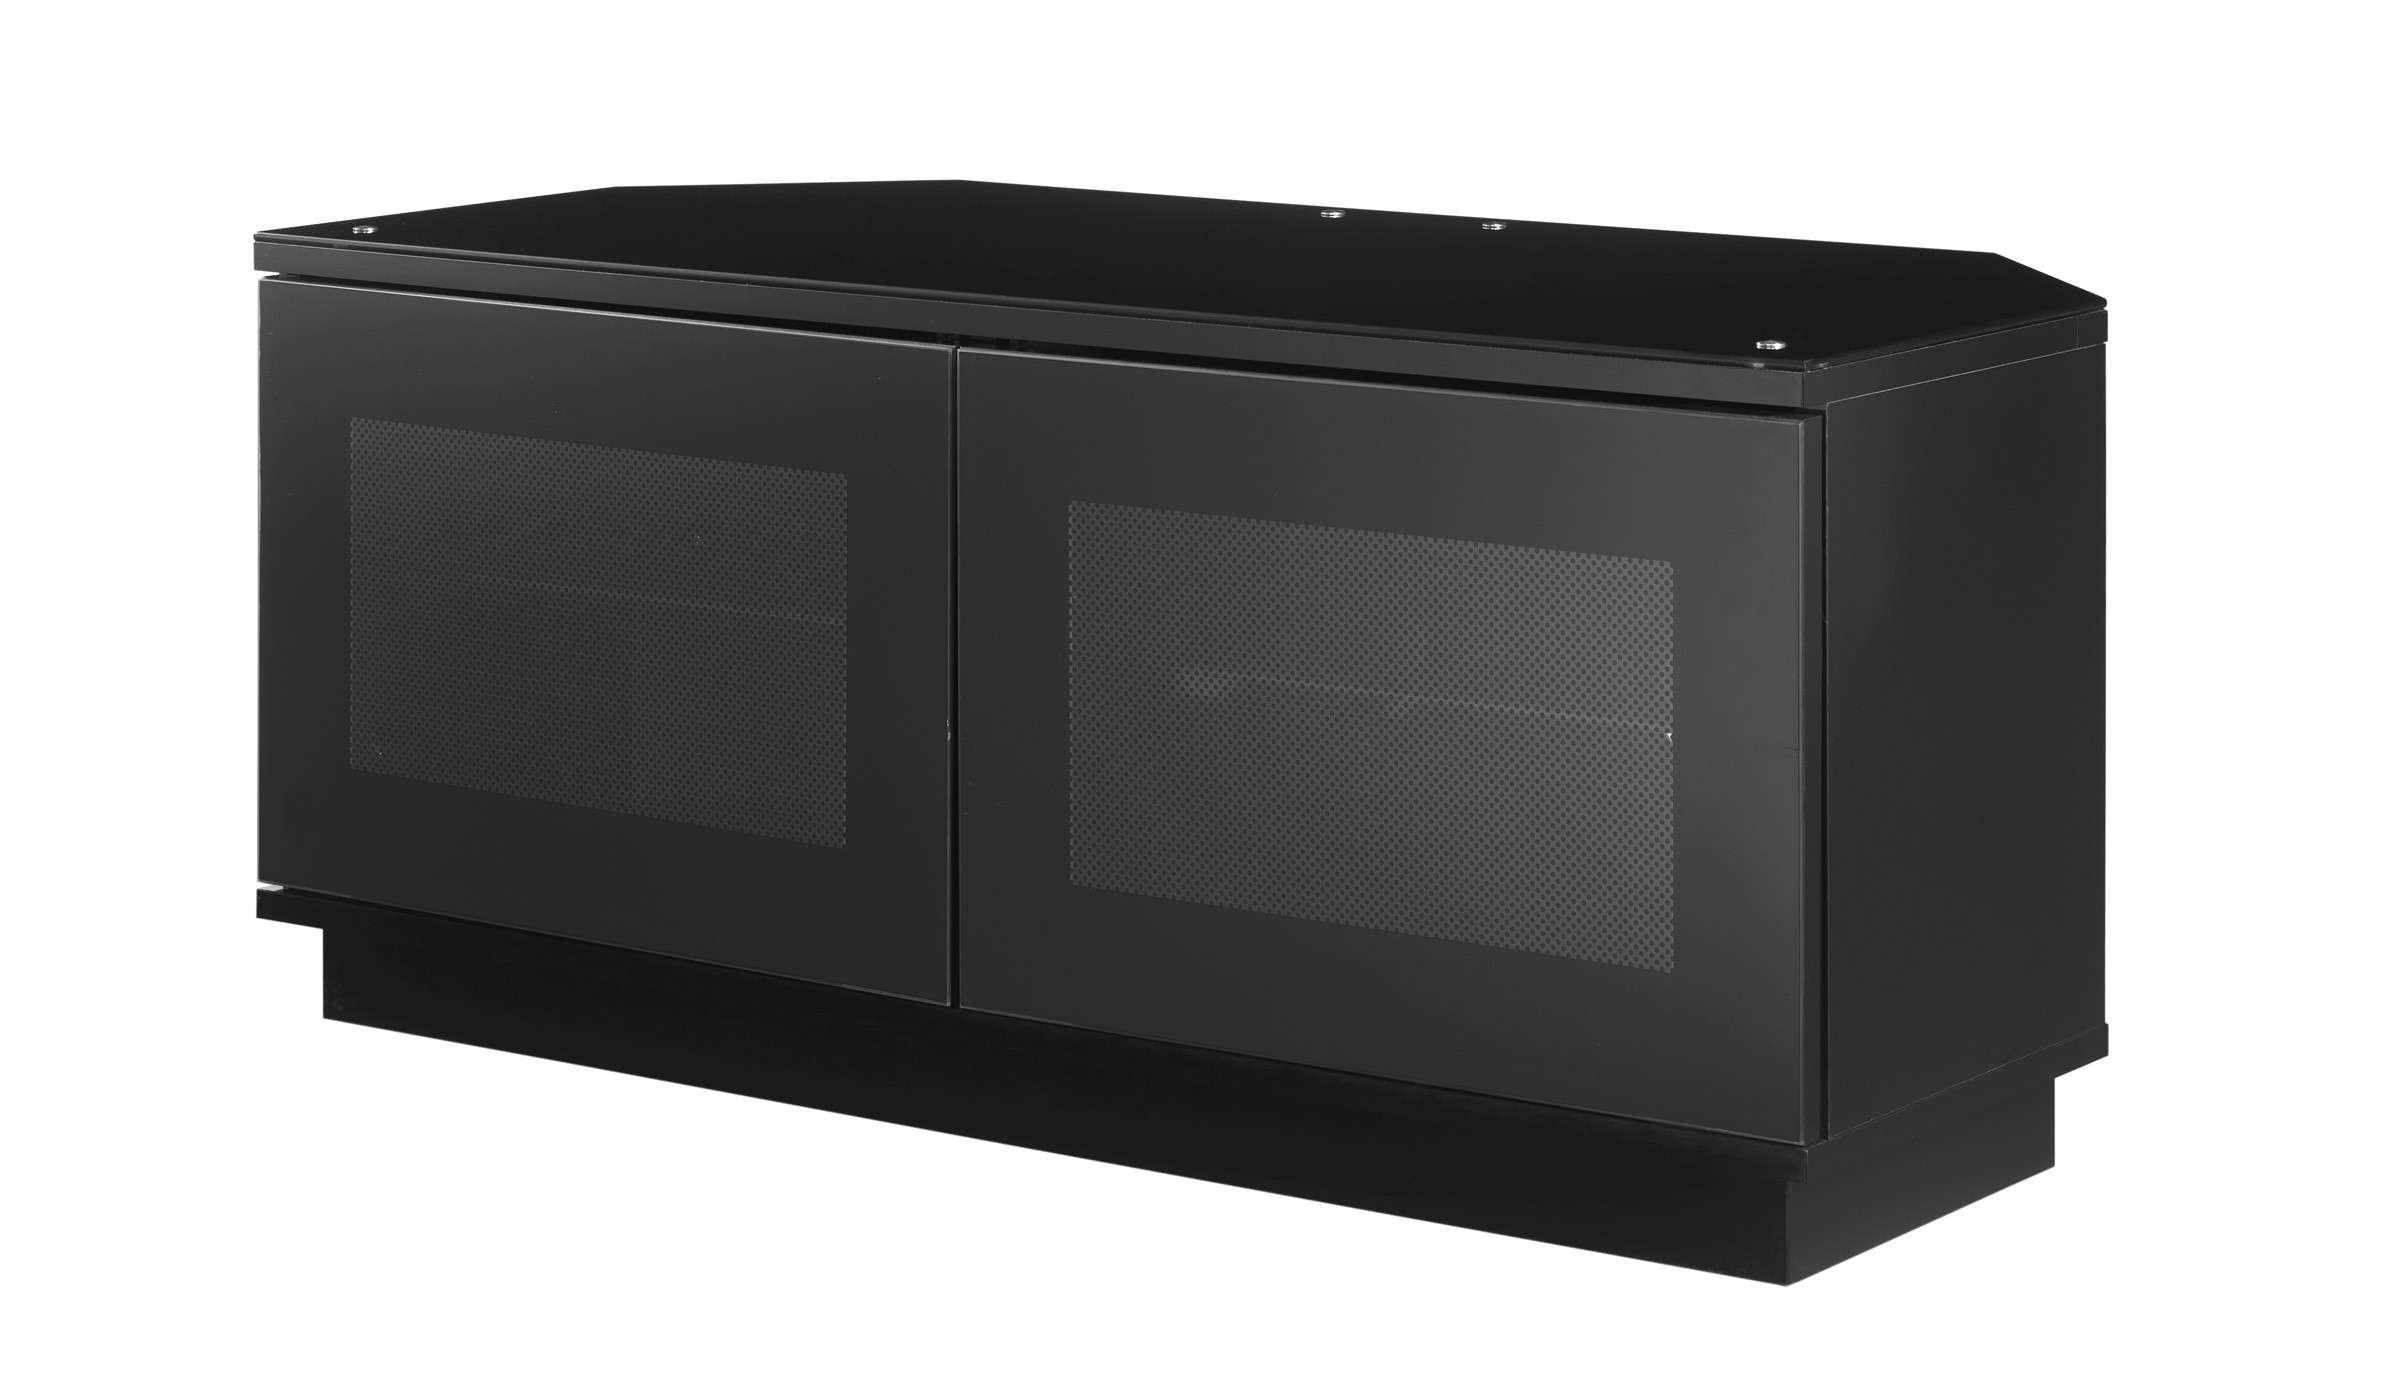 Small Black Tv Stand Cabinet With Door For Corner – Decofurnish Throughout Black Wood Corner Tv Stands (View 13 of 15)